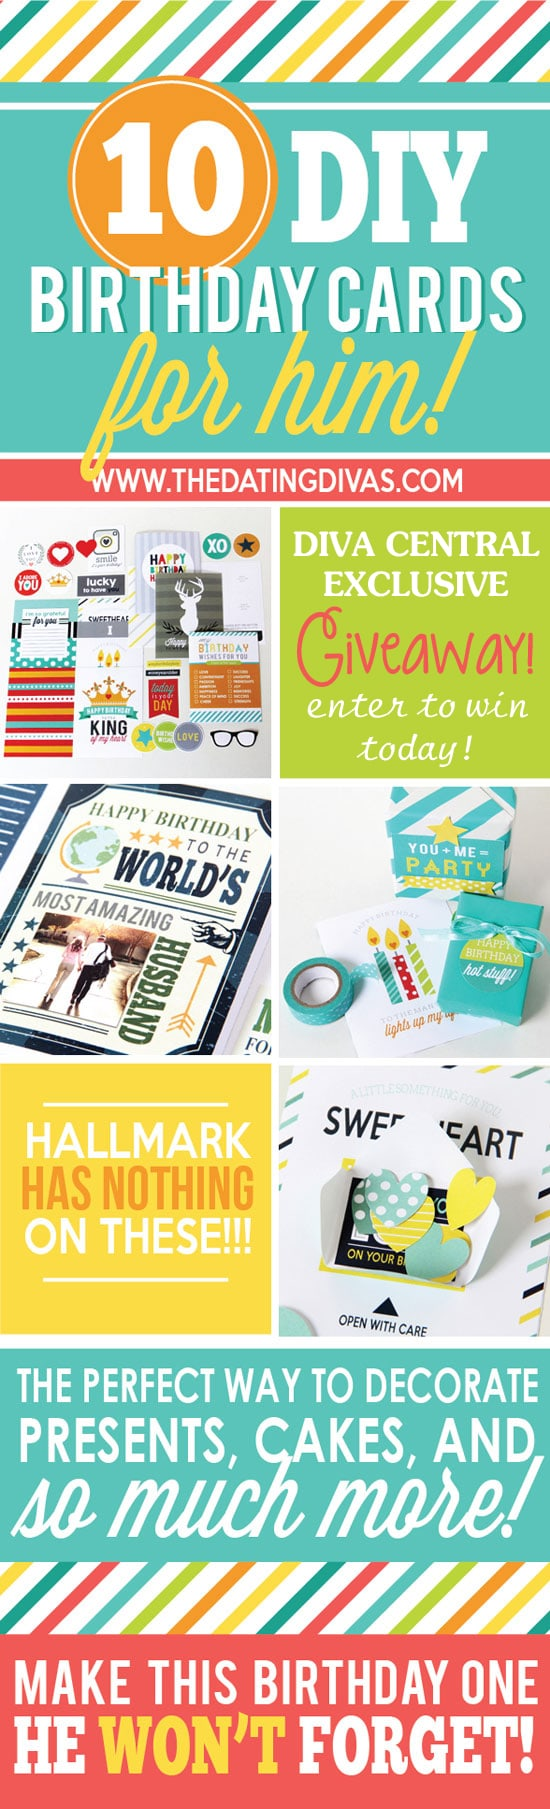 Printable Birthday Cards for Him giveaway